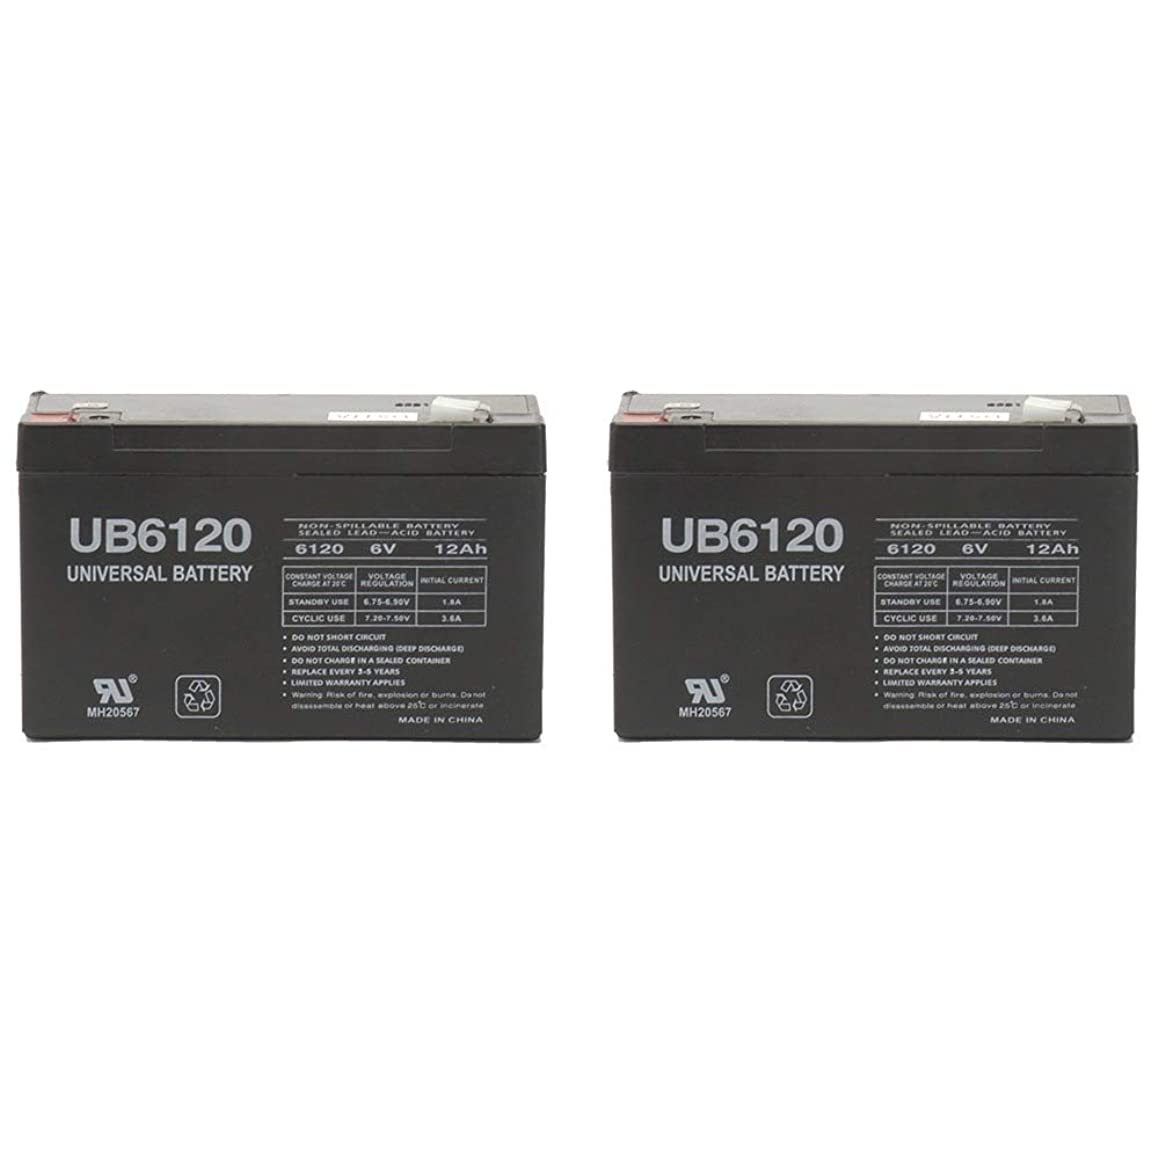 6V 12AH F2 BATTERY Replaces POWER-SONIC PS-6100F2 6V,12AH,F2,EACH - 2 Pack